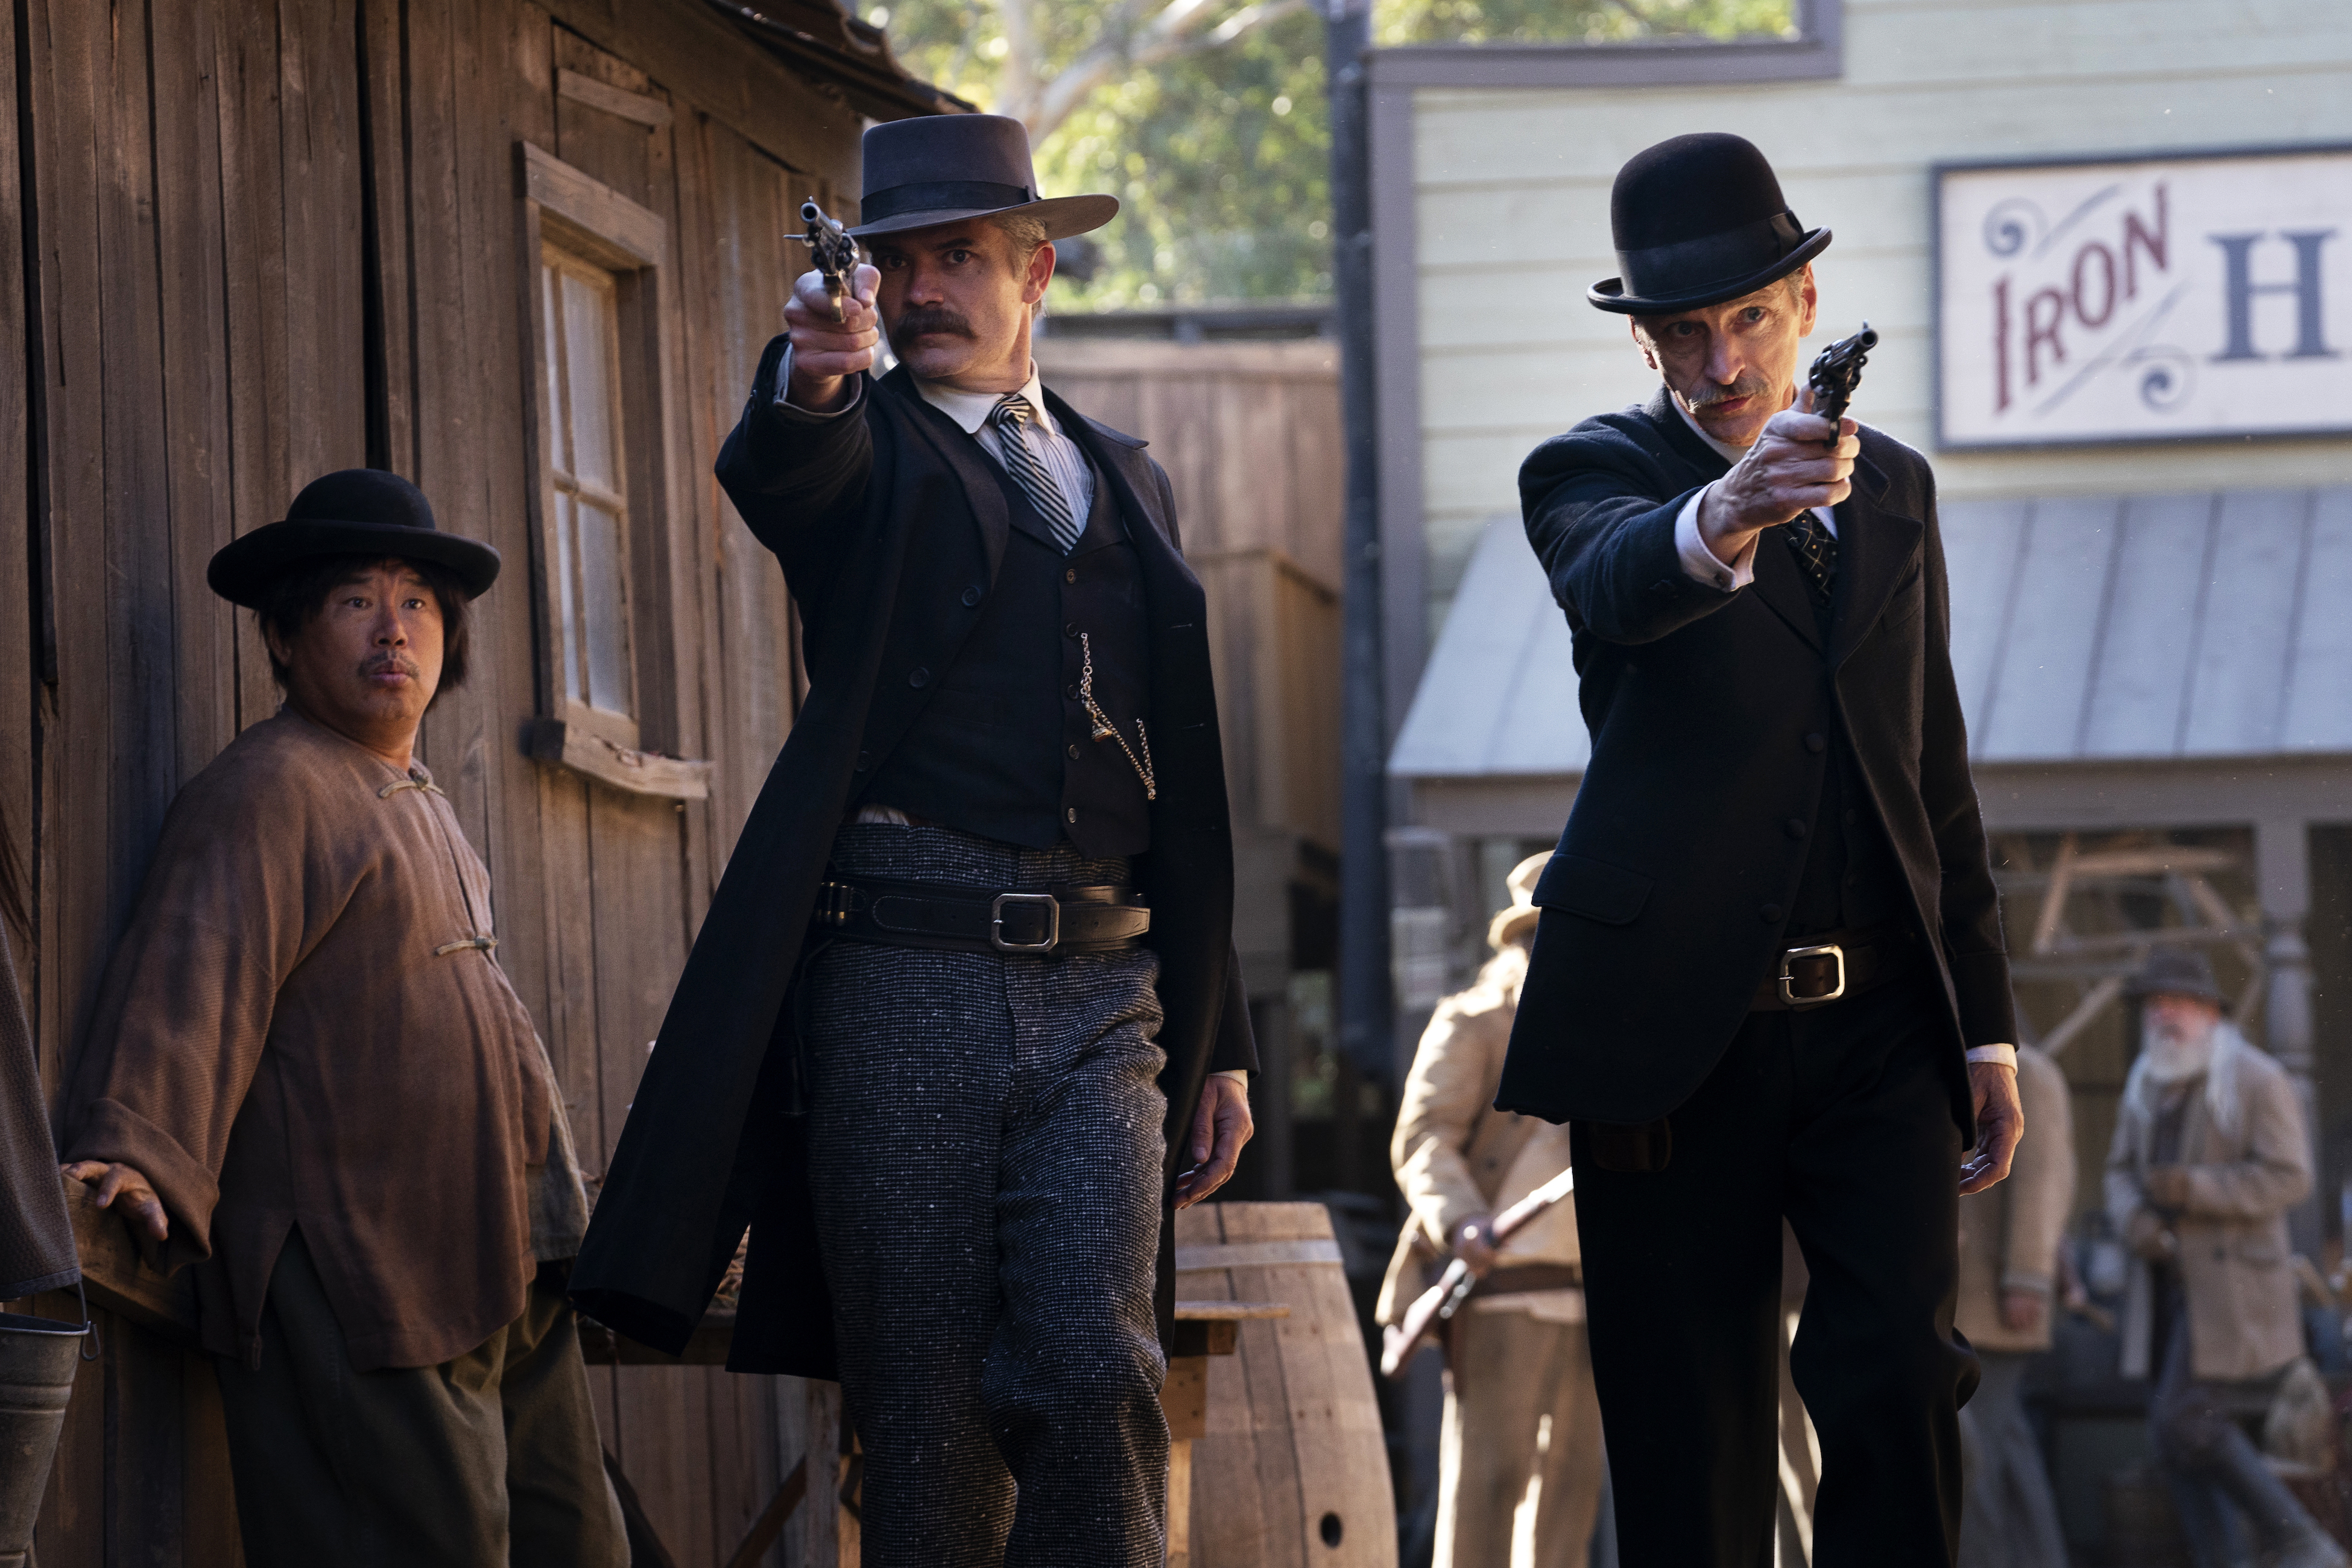 The Deadwood movie: Everything you need to know before watching